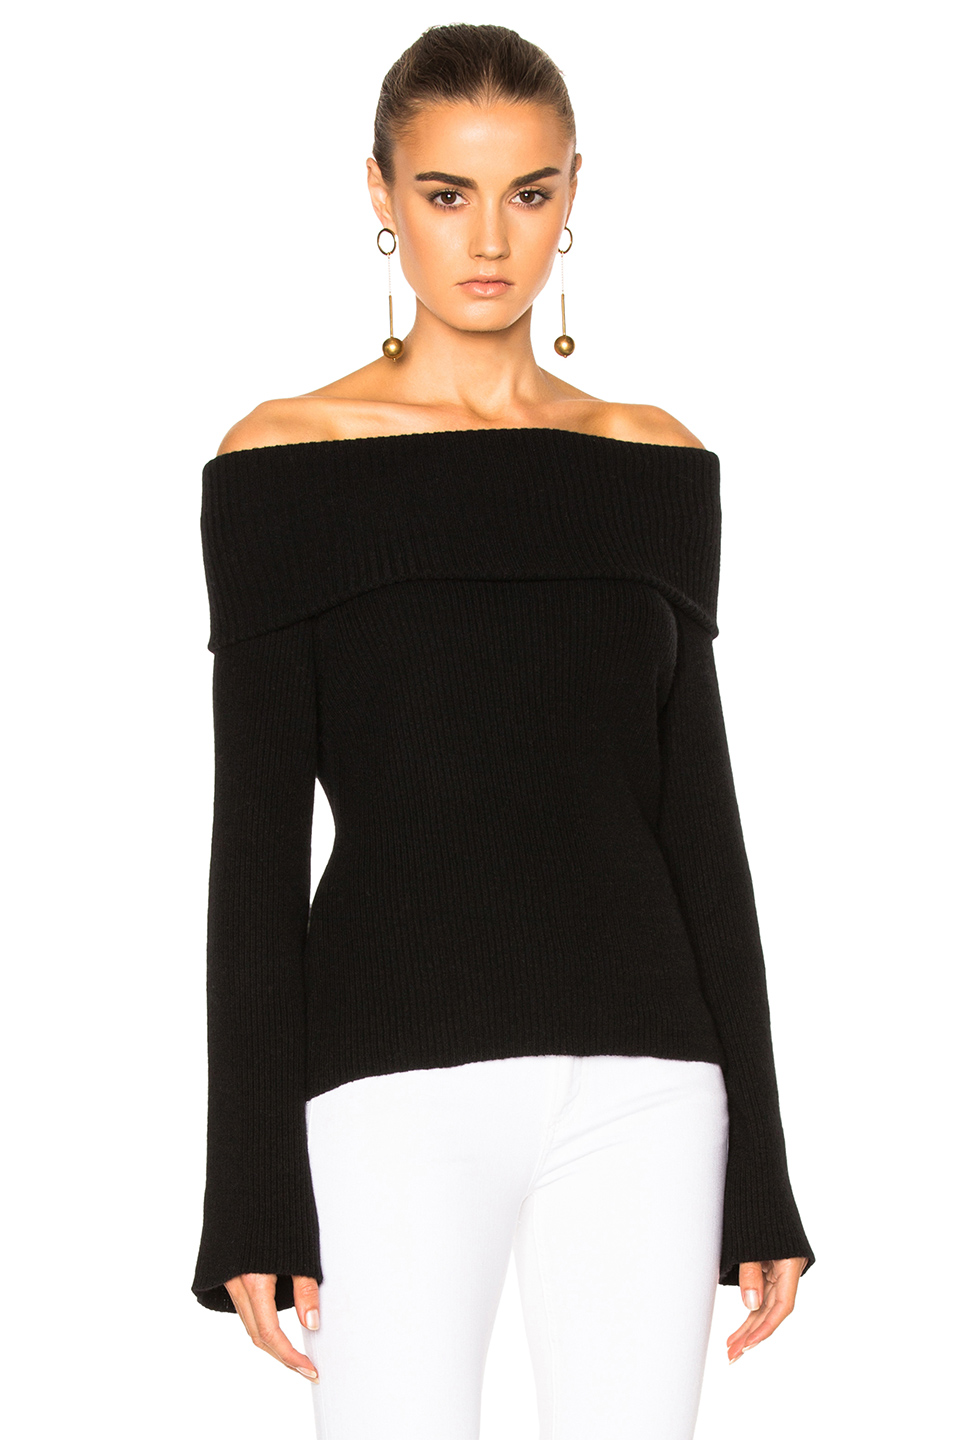 Ryan Roche FWRD Exclusive Off the Shoulder Sweater in Black